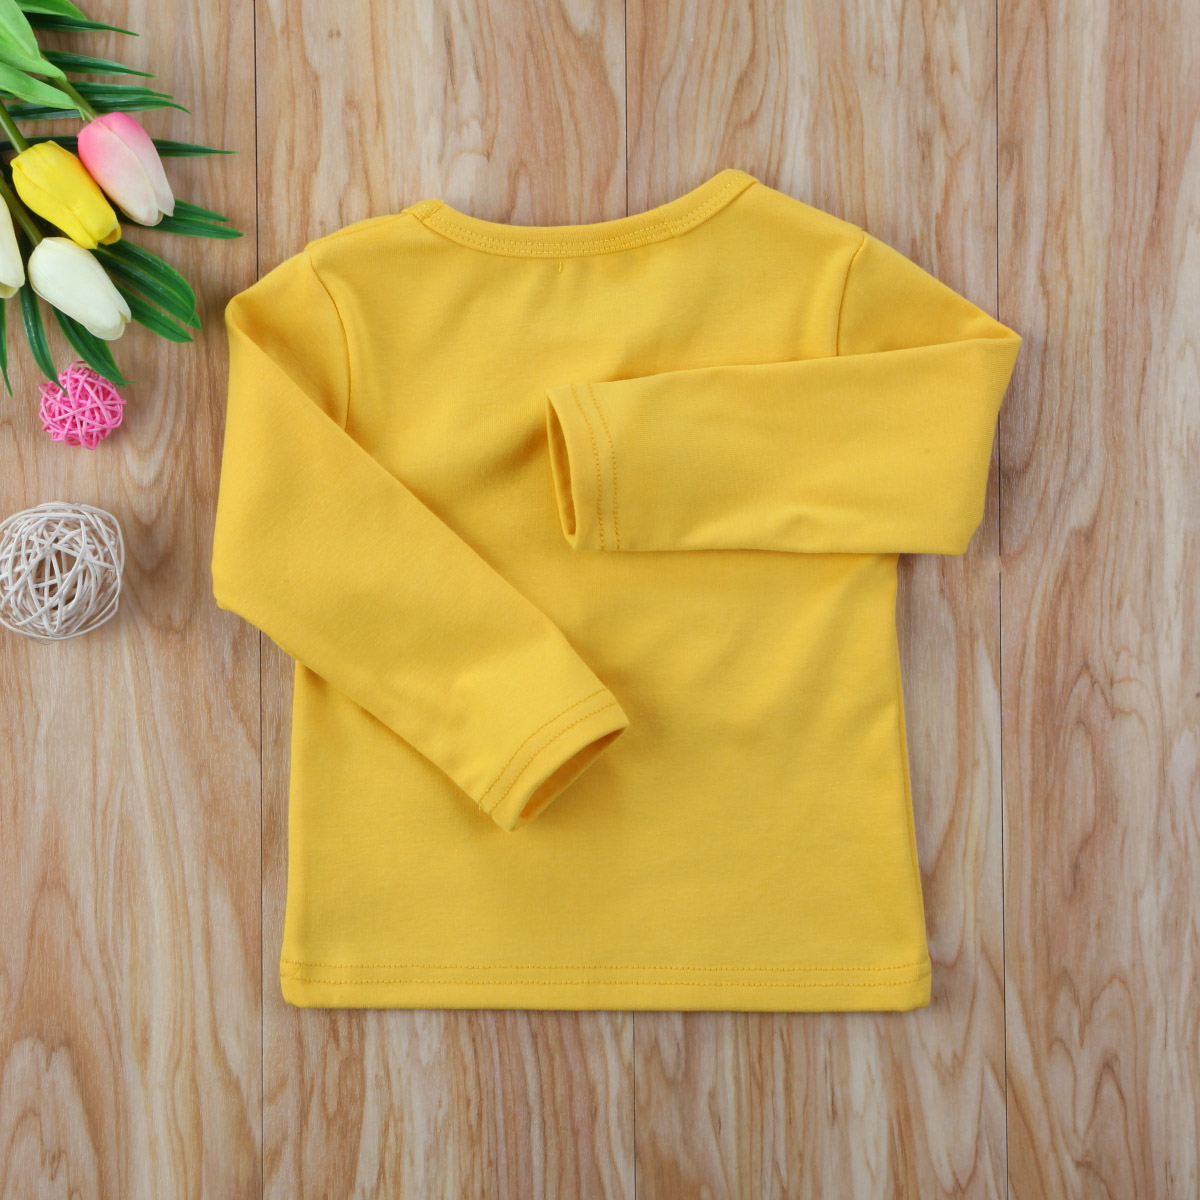 Autumn Cotton Newborn Infant Kids Baby Boys Girls Clothes Solid Cotton Soft Clothing Long Sleeves T-shirt Tops 12